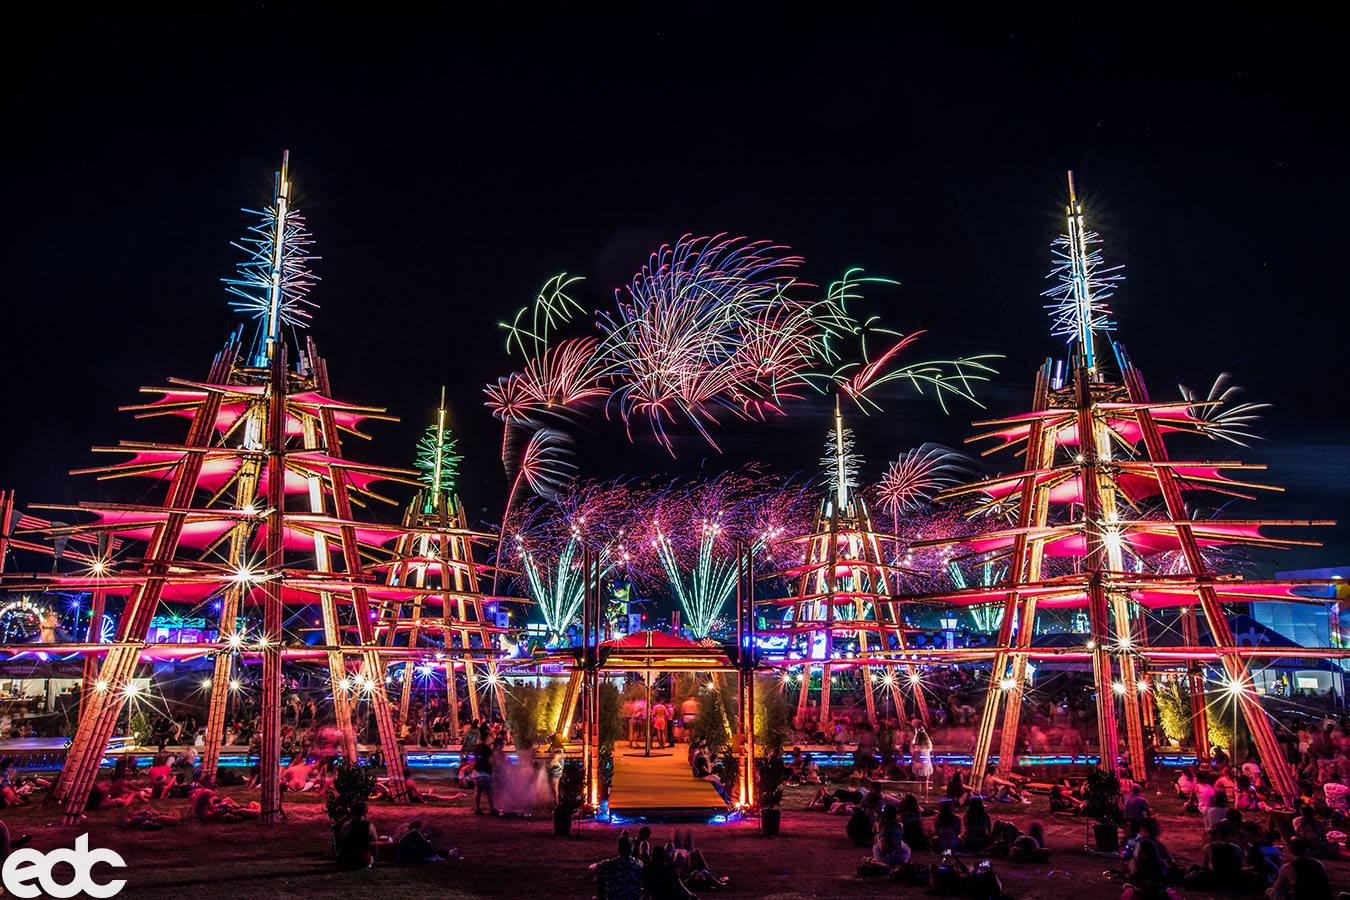 Insomniac Events Announces EDC China 2018 Debut